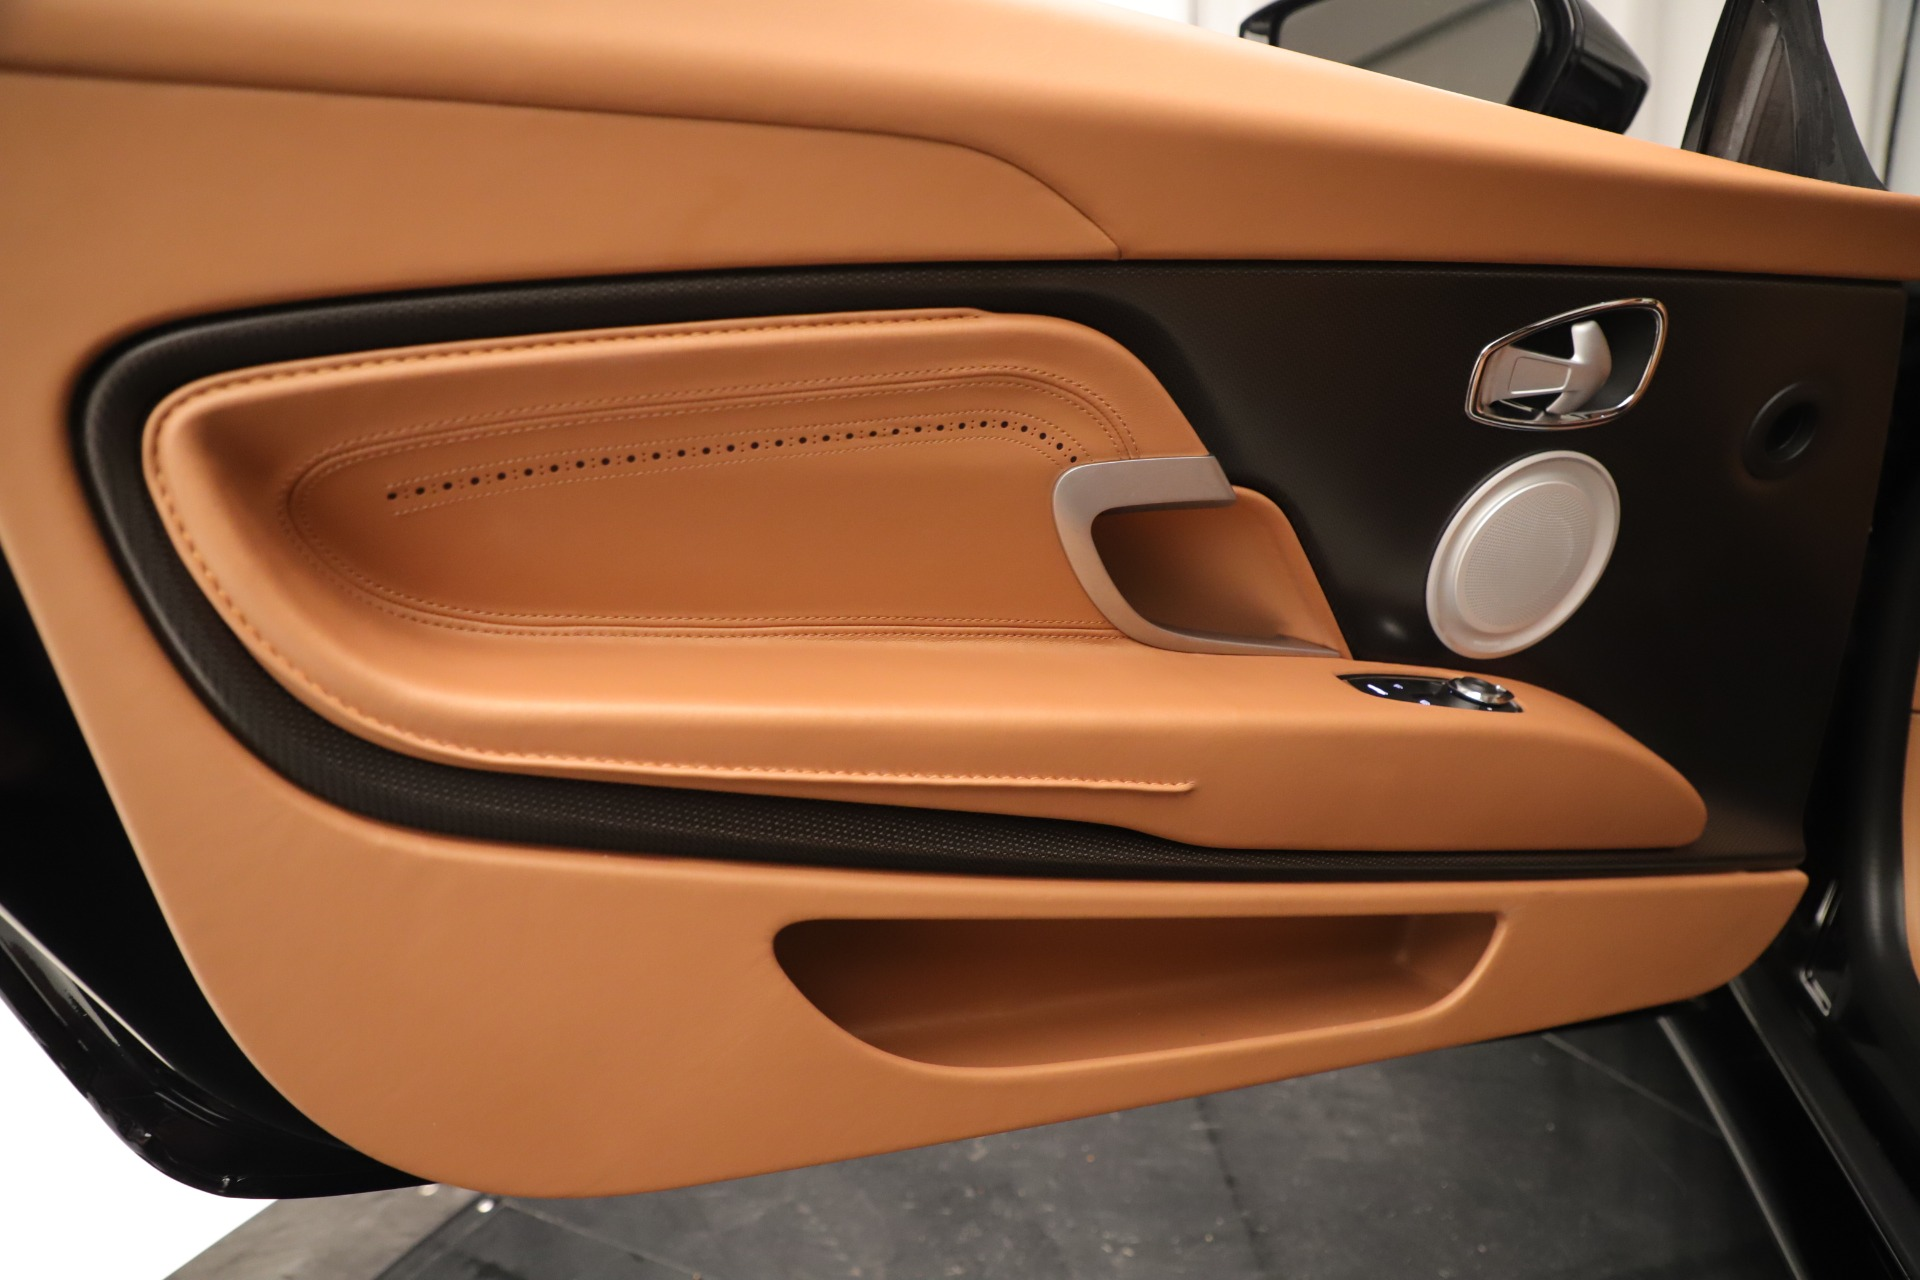 Used 2017 Aston Martin DB11 Launch Edition For Sale In Greenwich, CT 3431_p16